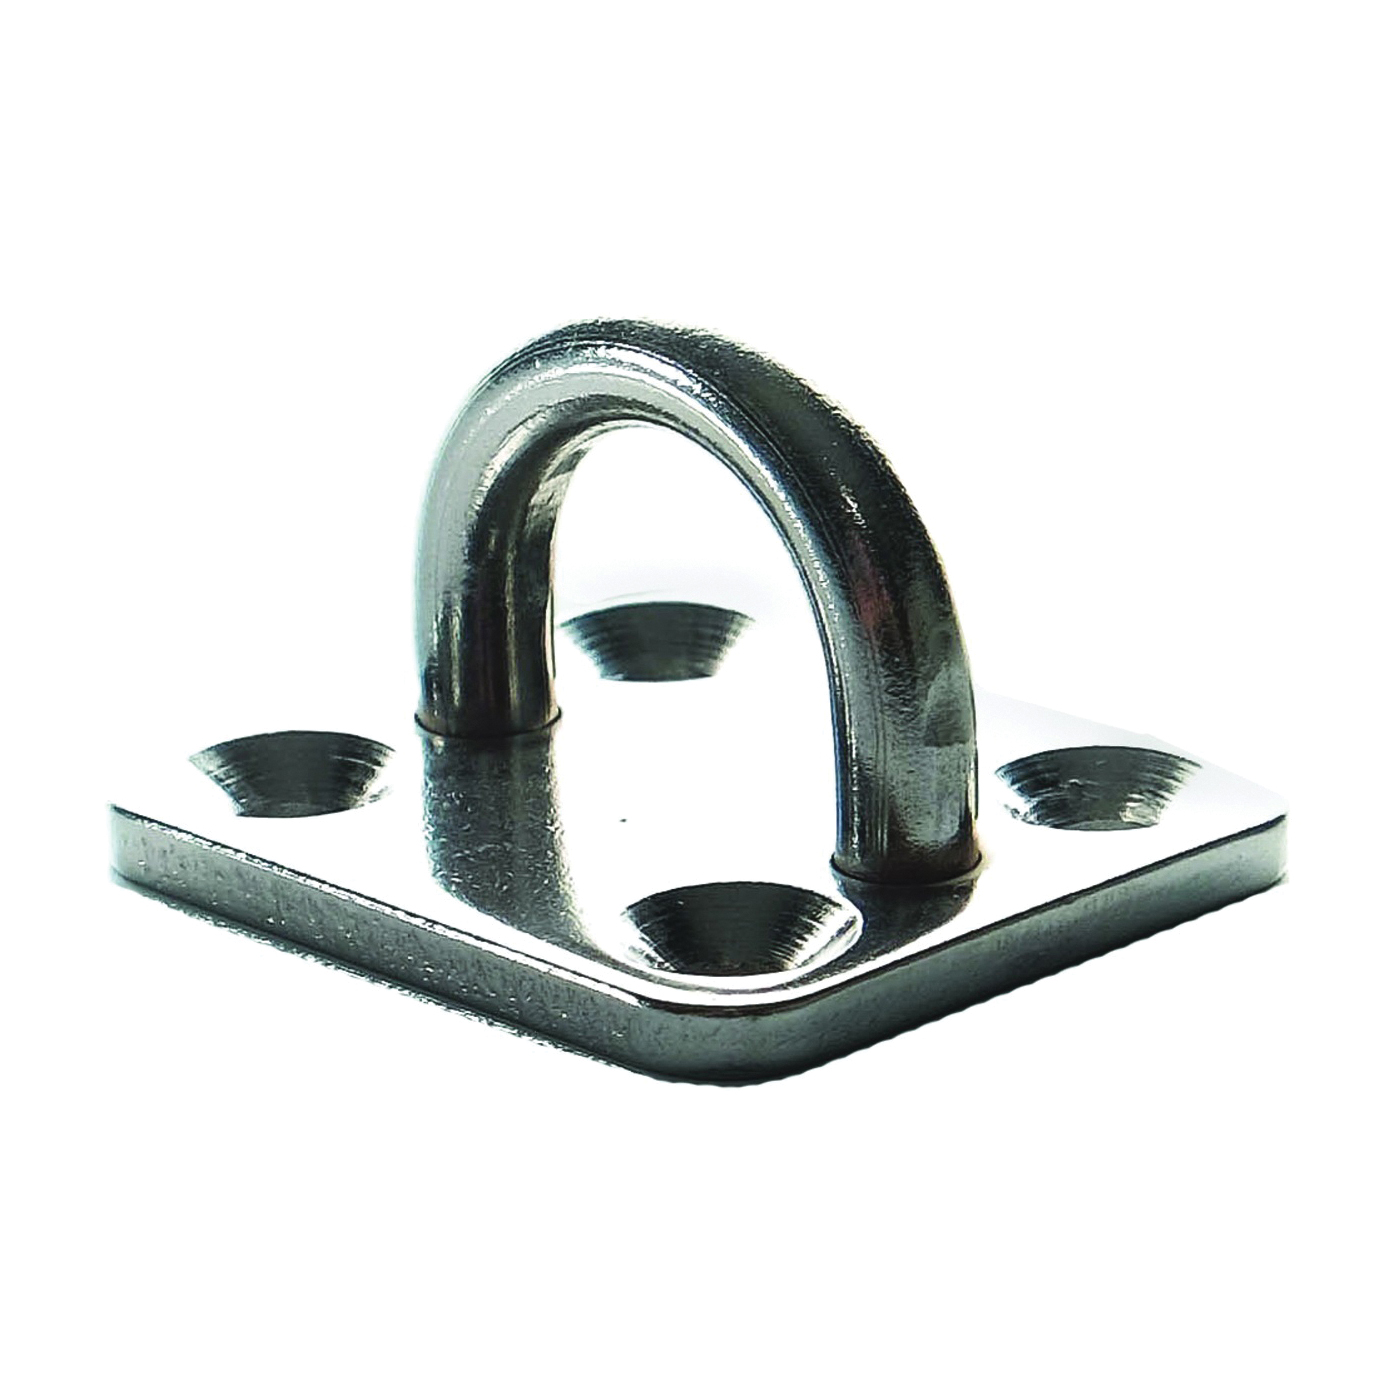 Picture of Ram Tail RT SEP-02 Square Eye Plate, Stainless Steel, For: Turnbuckle or Fork Jaws